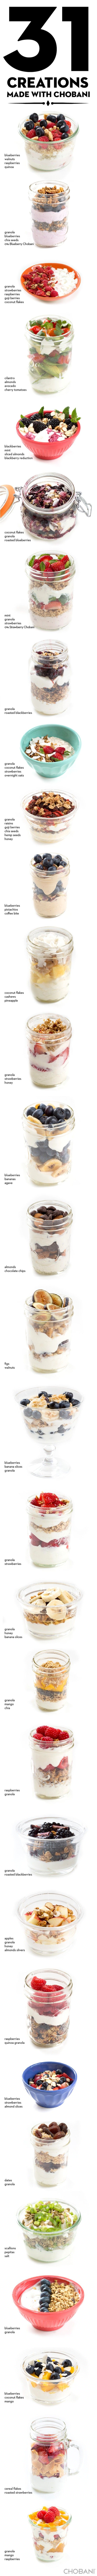 A creation for every day of the month: 31 Creations Made With Chobani!